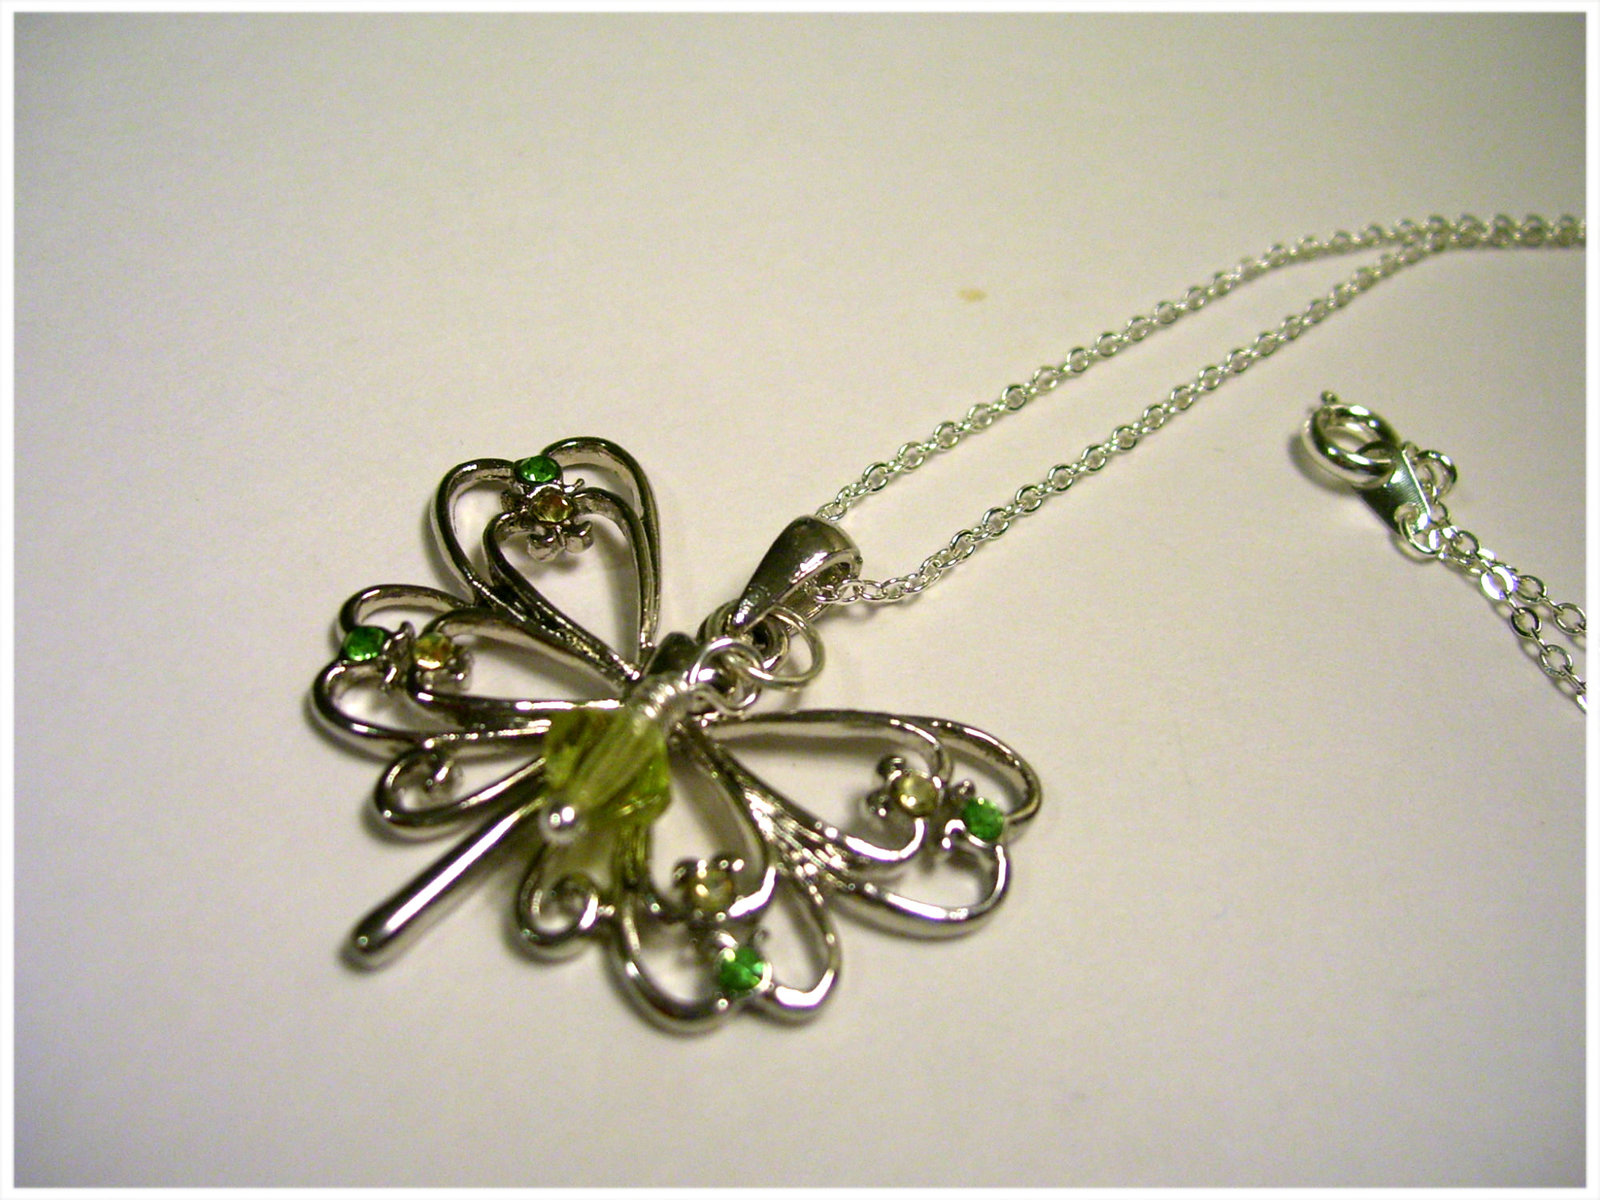 Silver Butterfly charm necklace with yellow and green accents